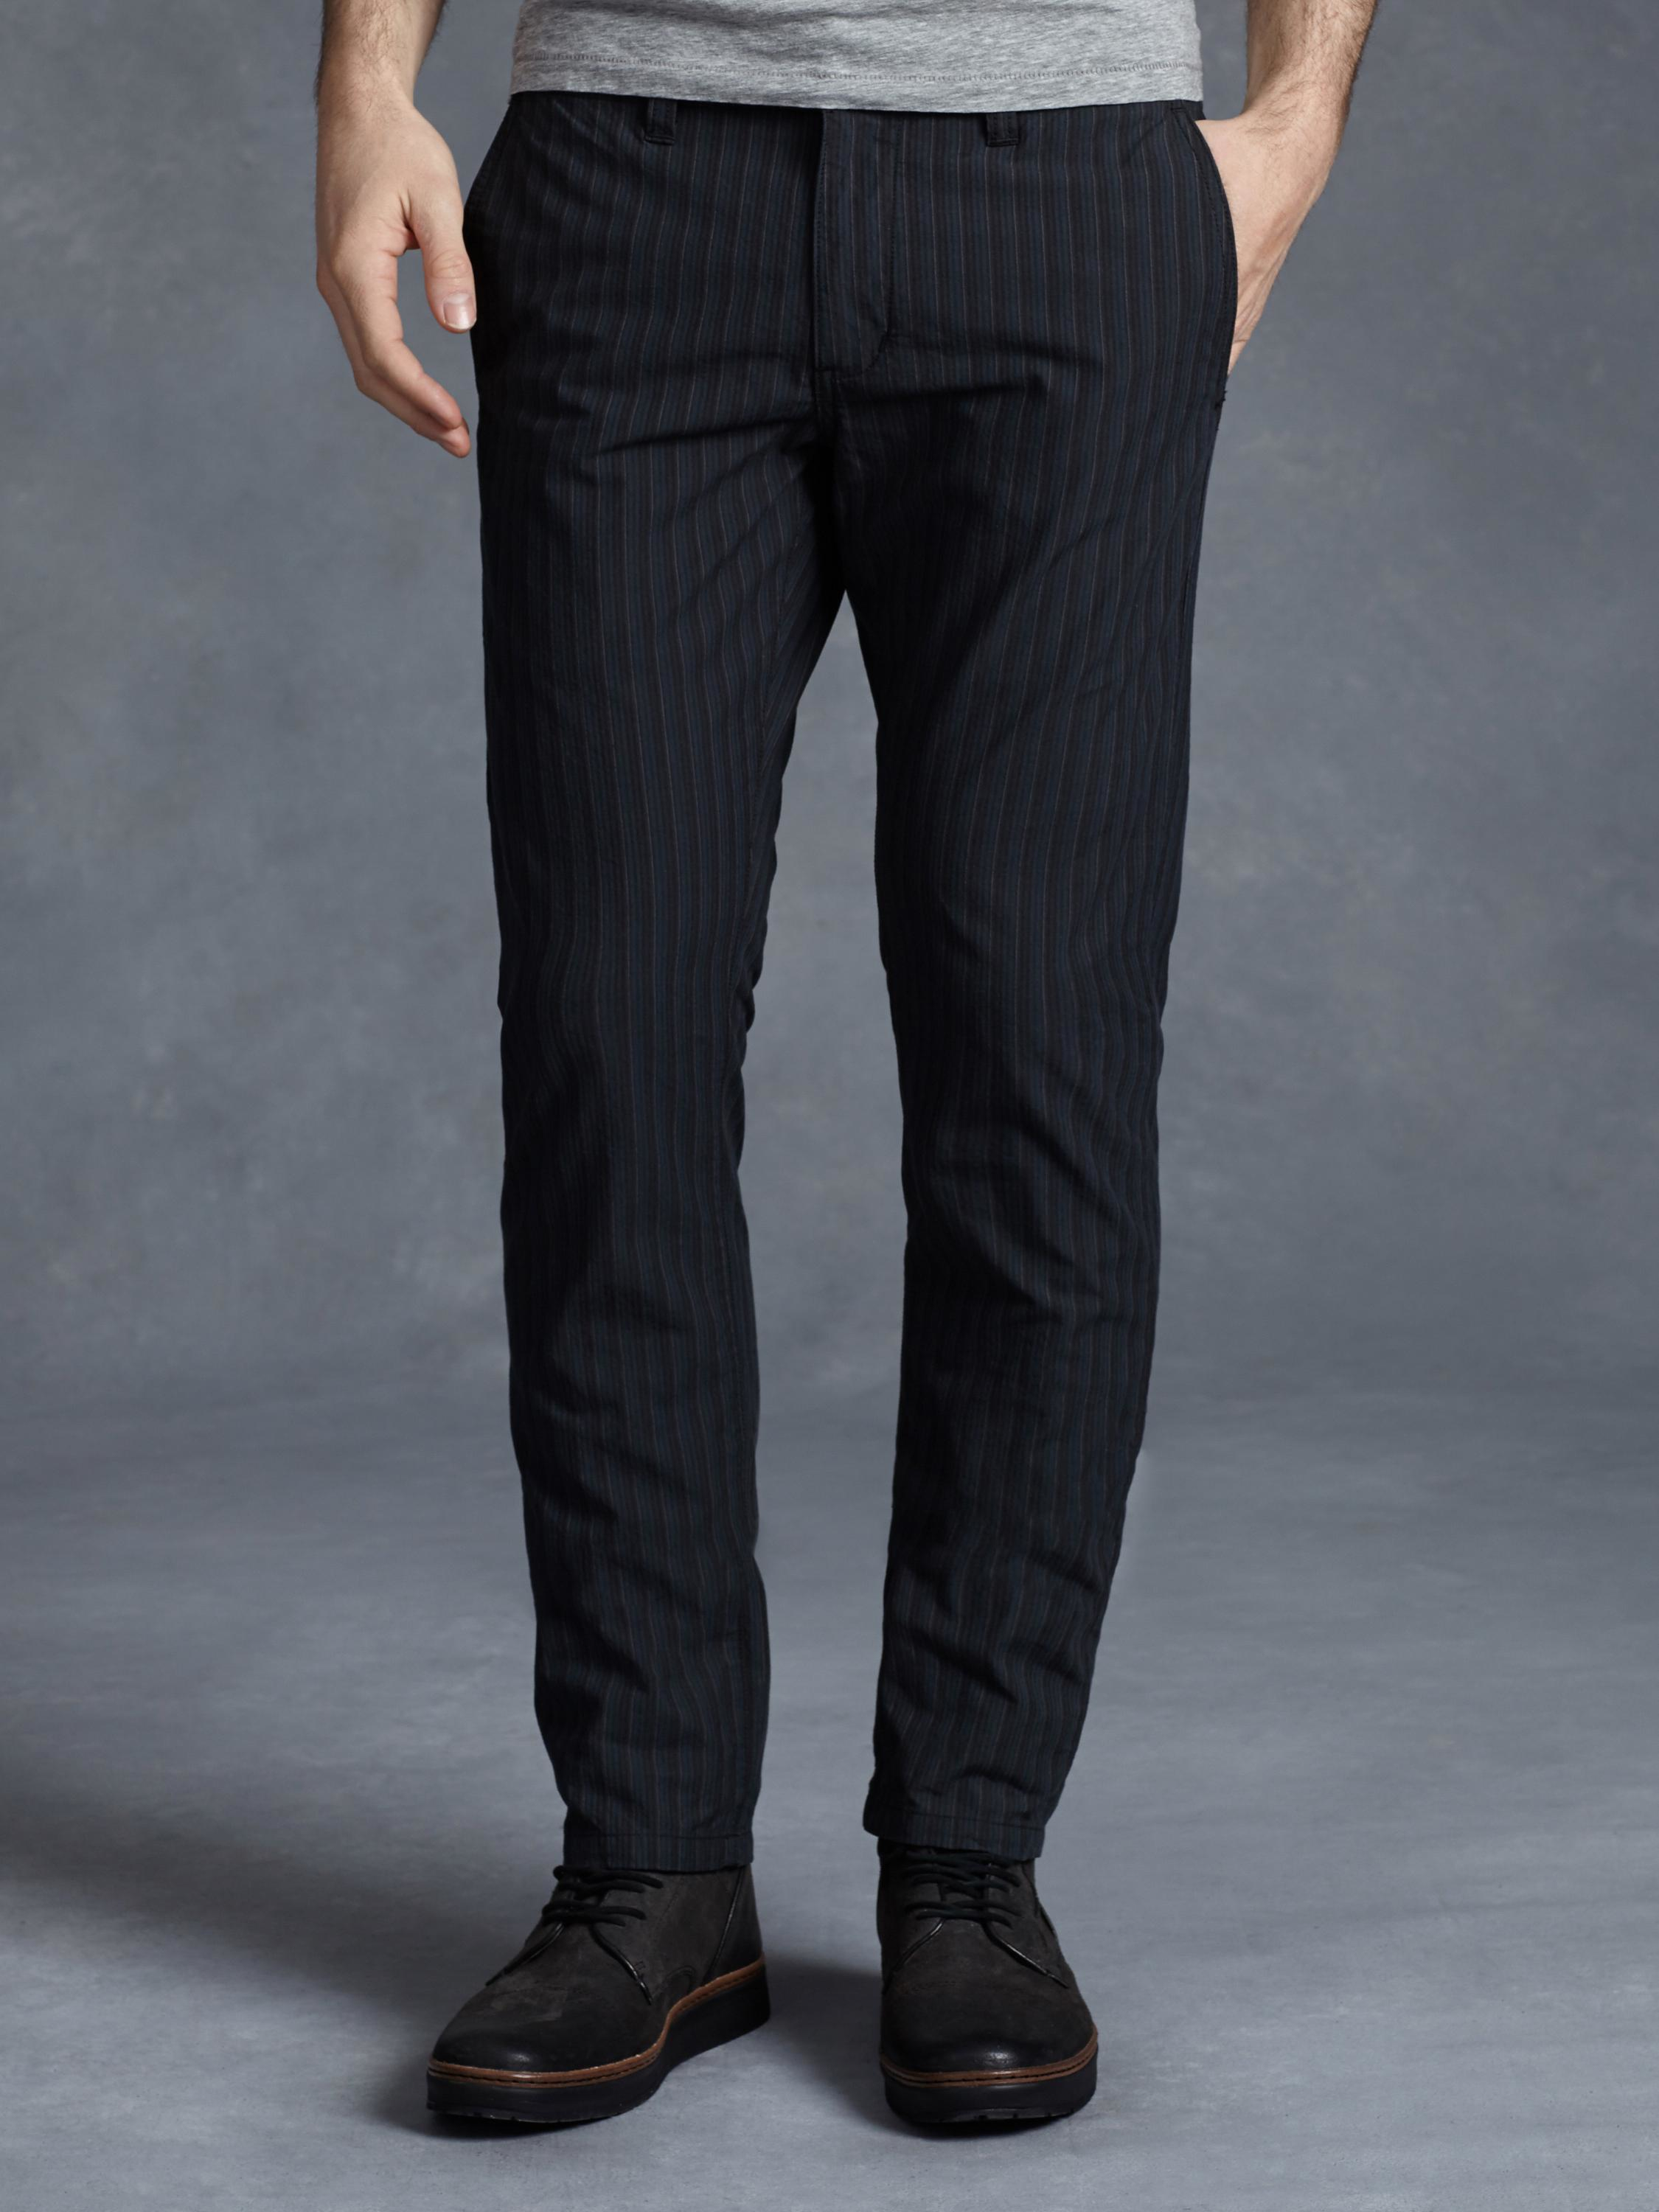 Sale Fake TROUSERS - Casual trousers John Varvatos Buy Cheap Cheapest Price Pay With Paypal Top Quality For Sale Outlet Discounts 7EaBSWF